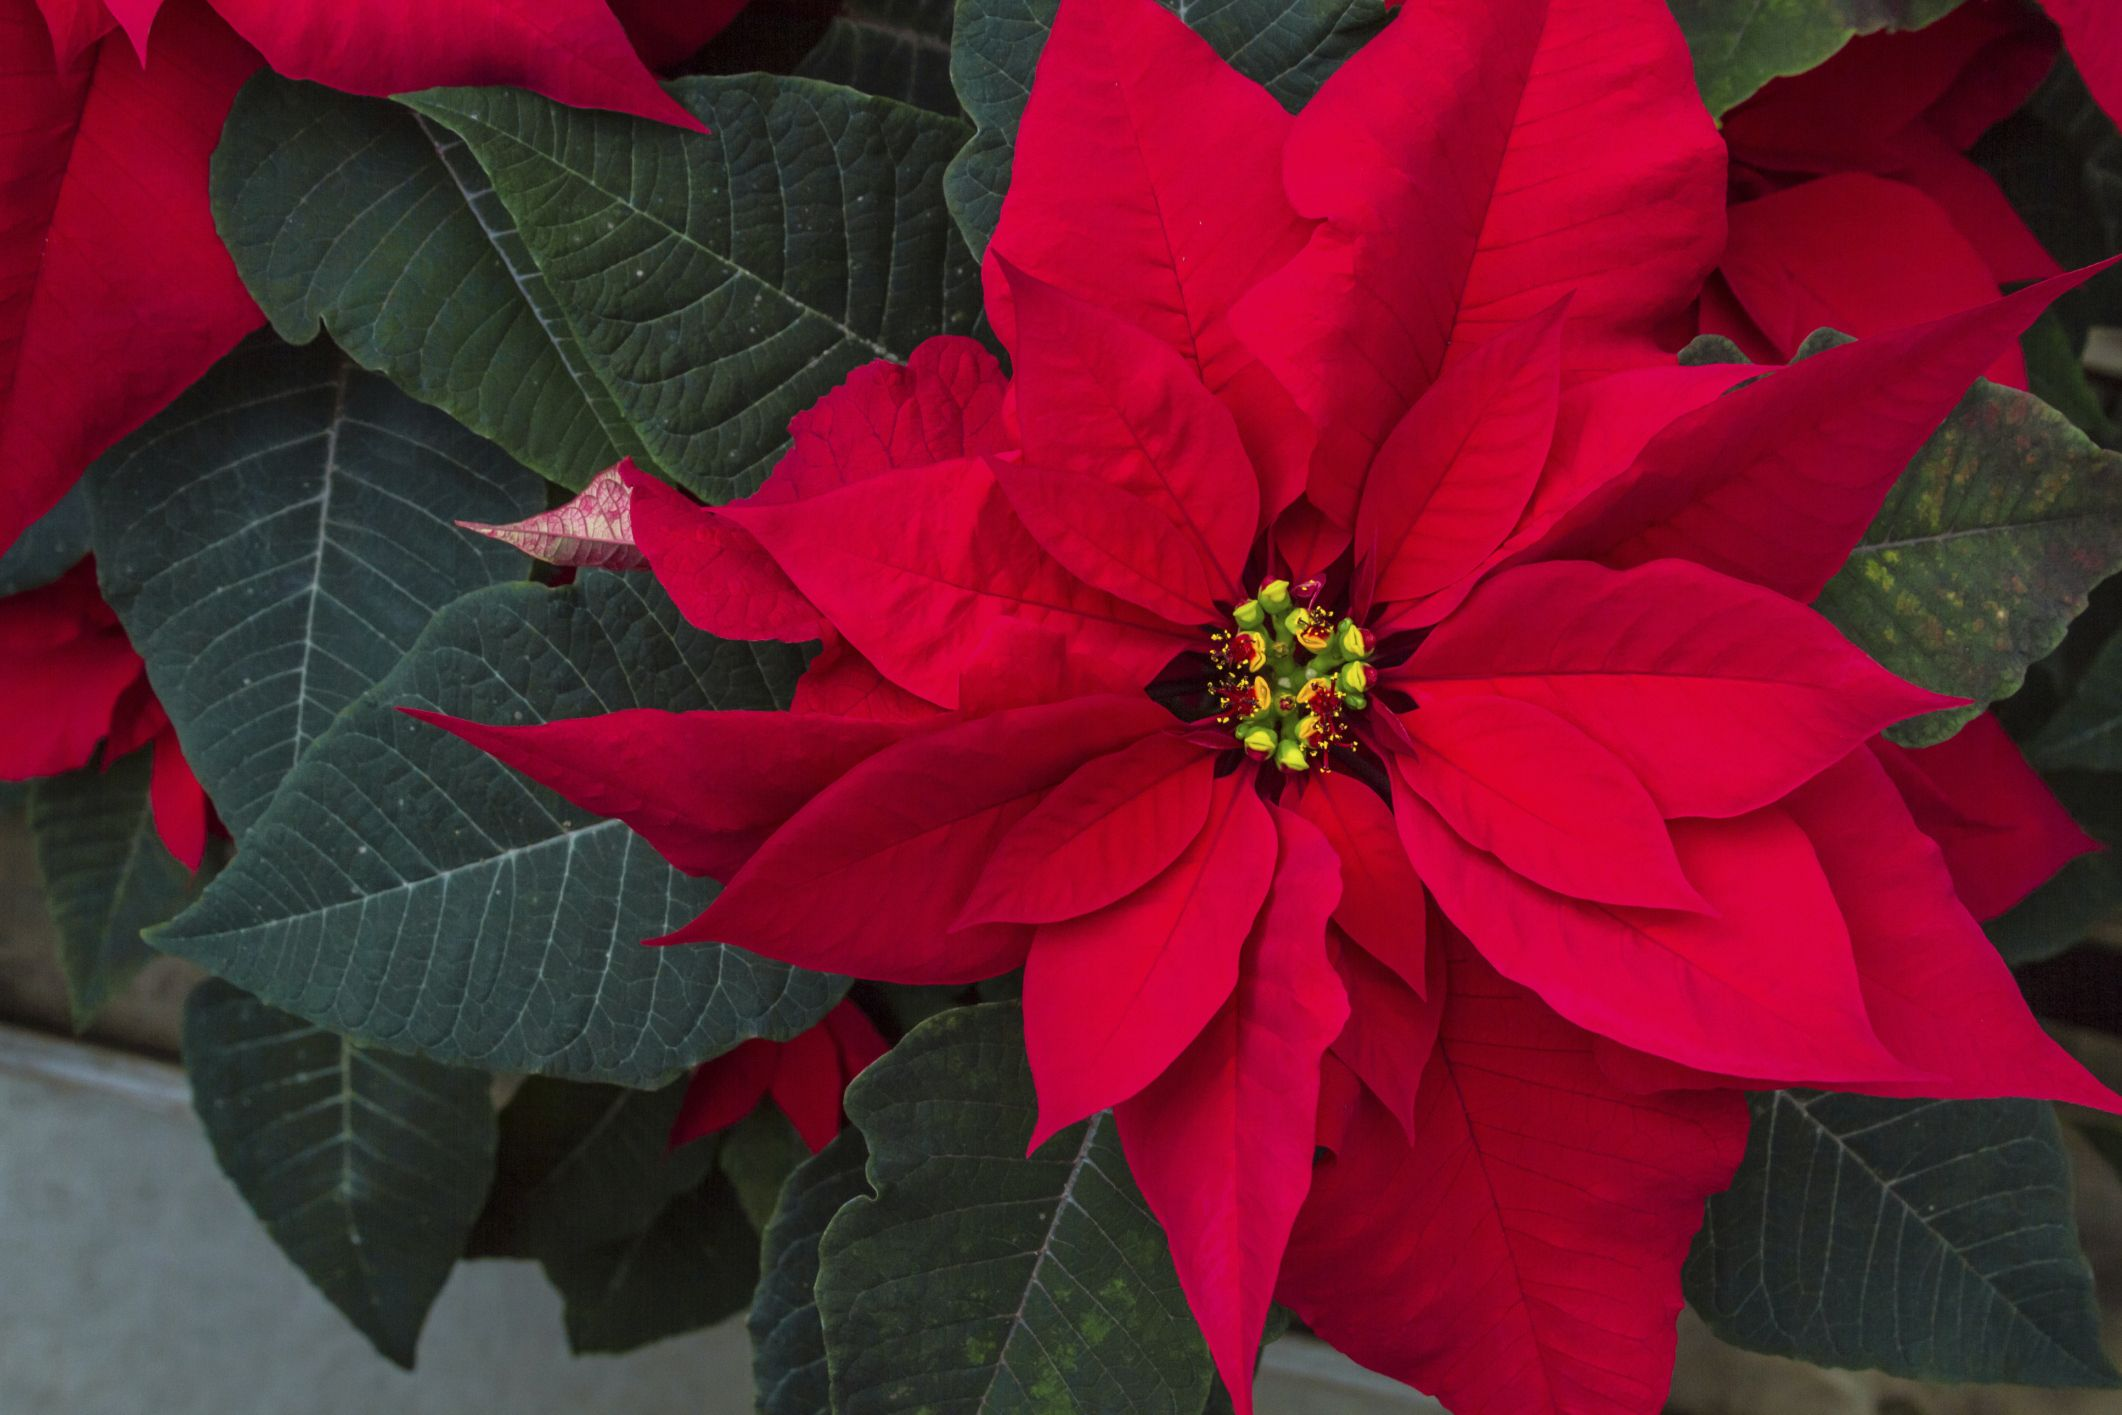 How To Make A Poinsettia S Leaves Turn Red Hunker Poinsettia Plant Poinsettia Leaves Poinsettia